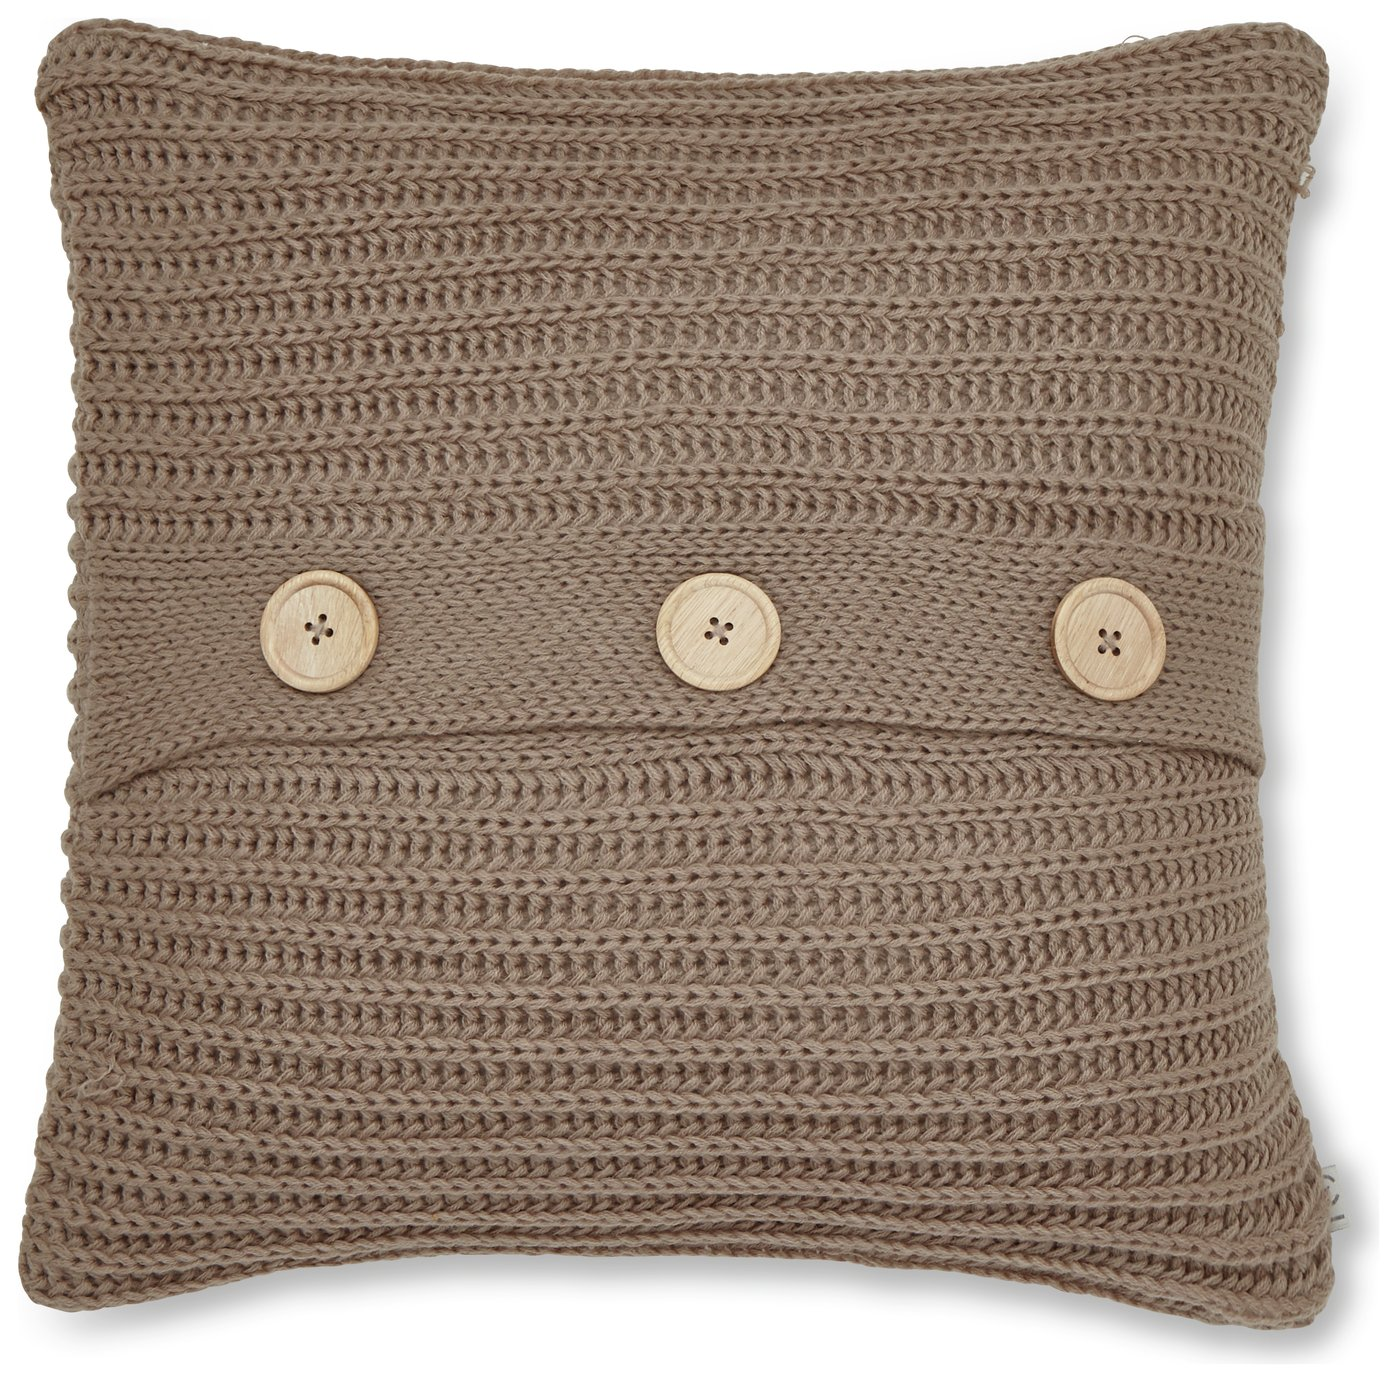 Image of Catherine Lansfield Chunky Knit Cushion - Natural